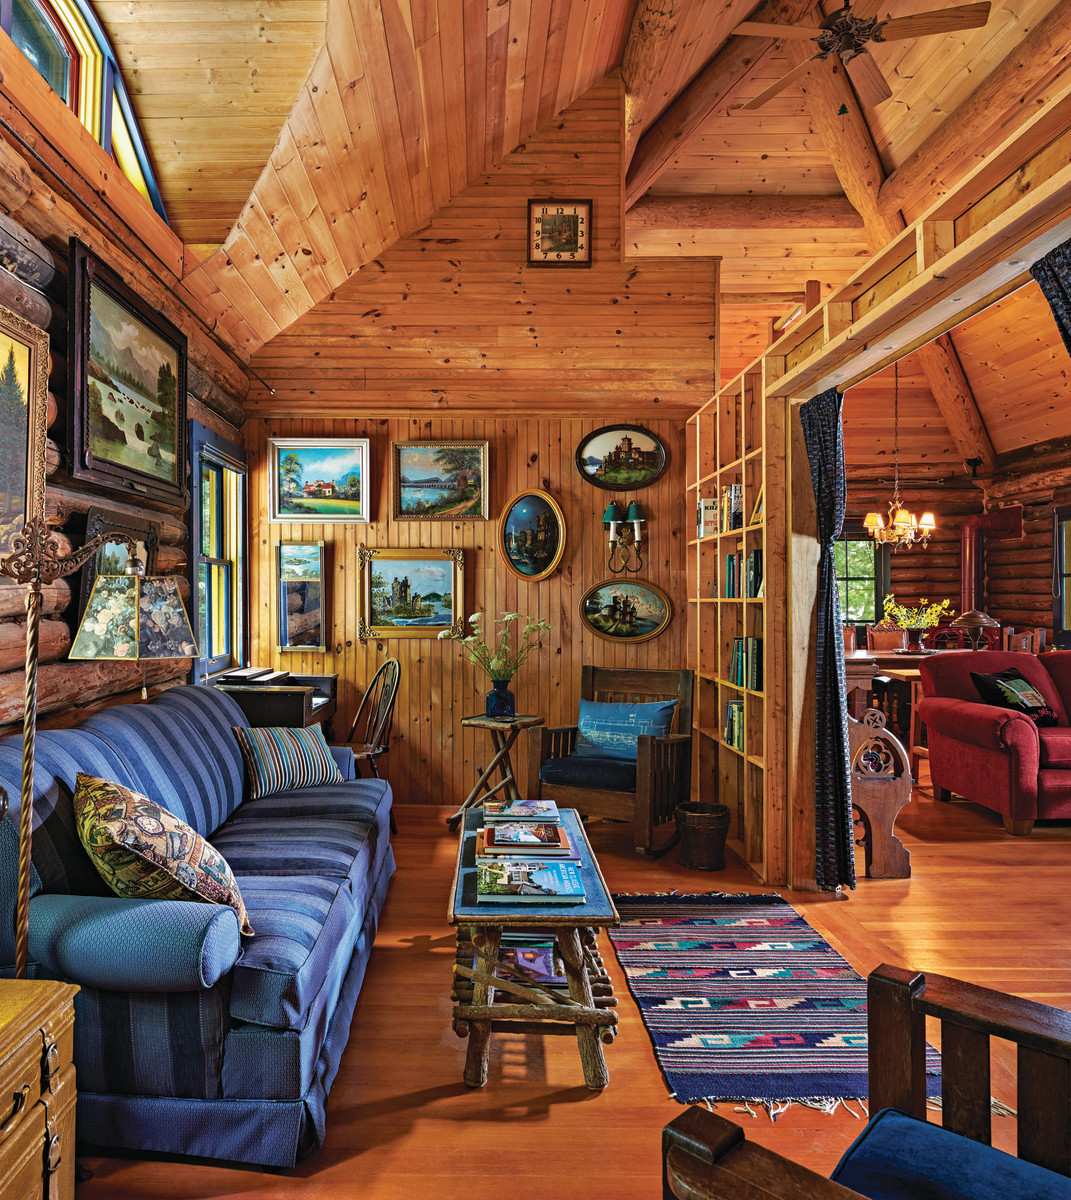 The cabin's original and only bedroom was converted into a library whose book shelves are the studs of the wall.